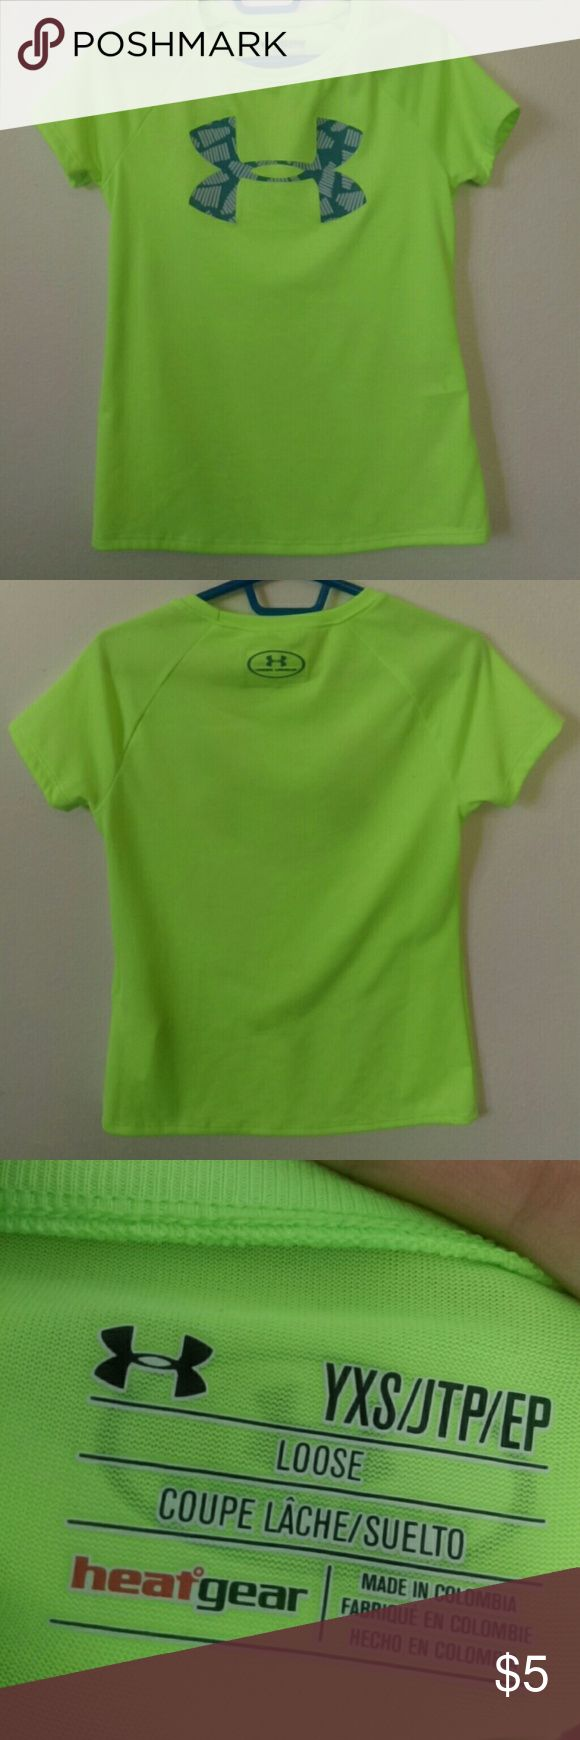 Youth XS Under armour t-shirt Vibrant green with the under armour logo on front. Light weight great for active kids. Under Armour Shirts & Tops Tees - Short Sleeve